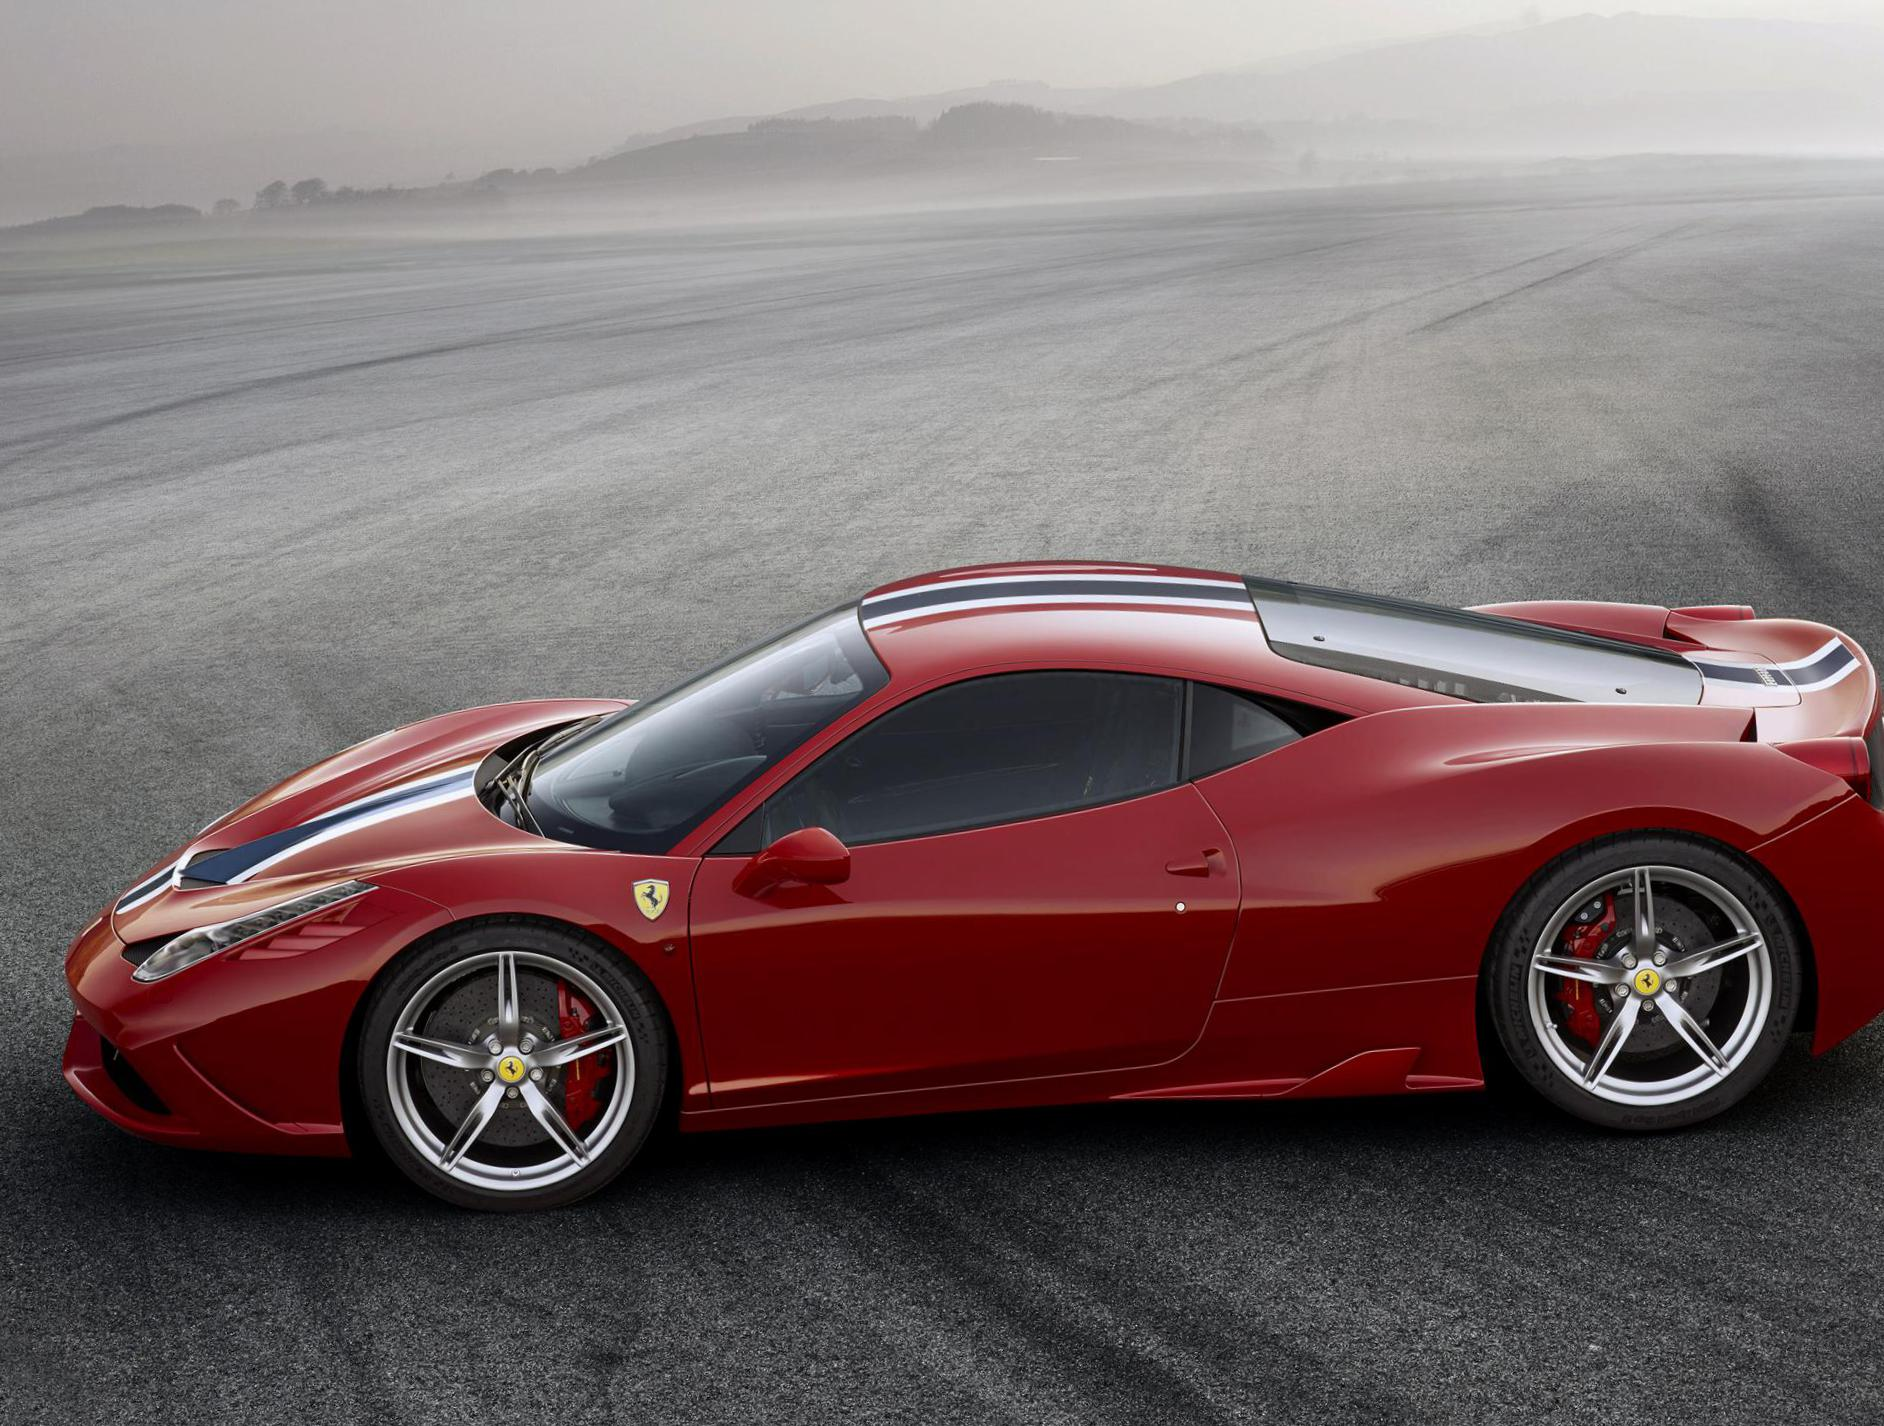 prices sale for on cars ferrari enzo jamesedition